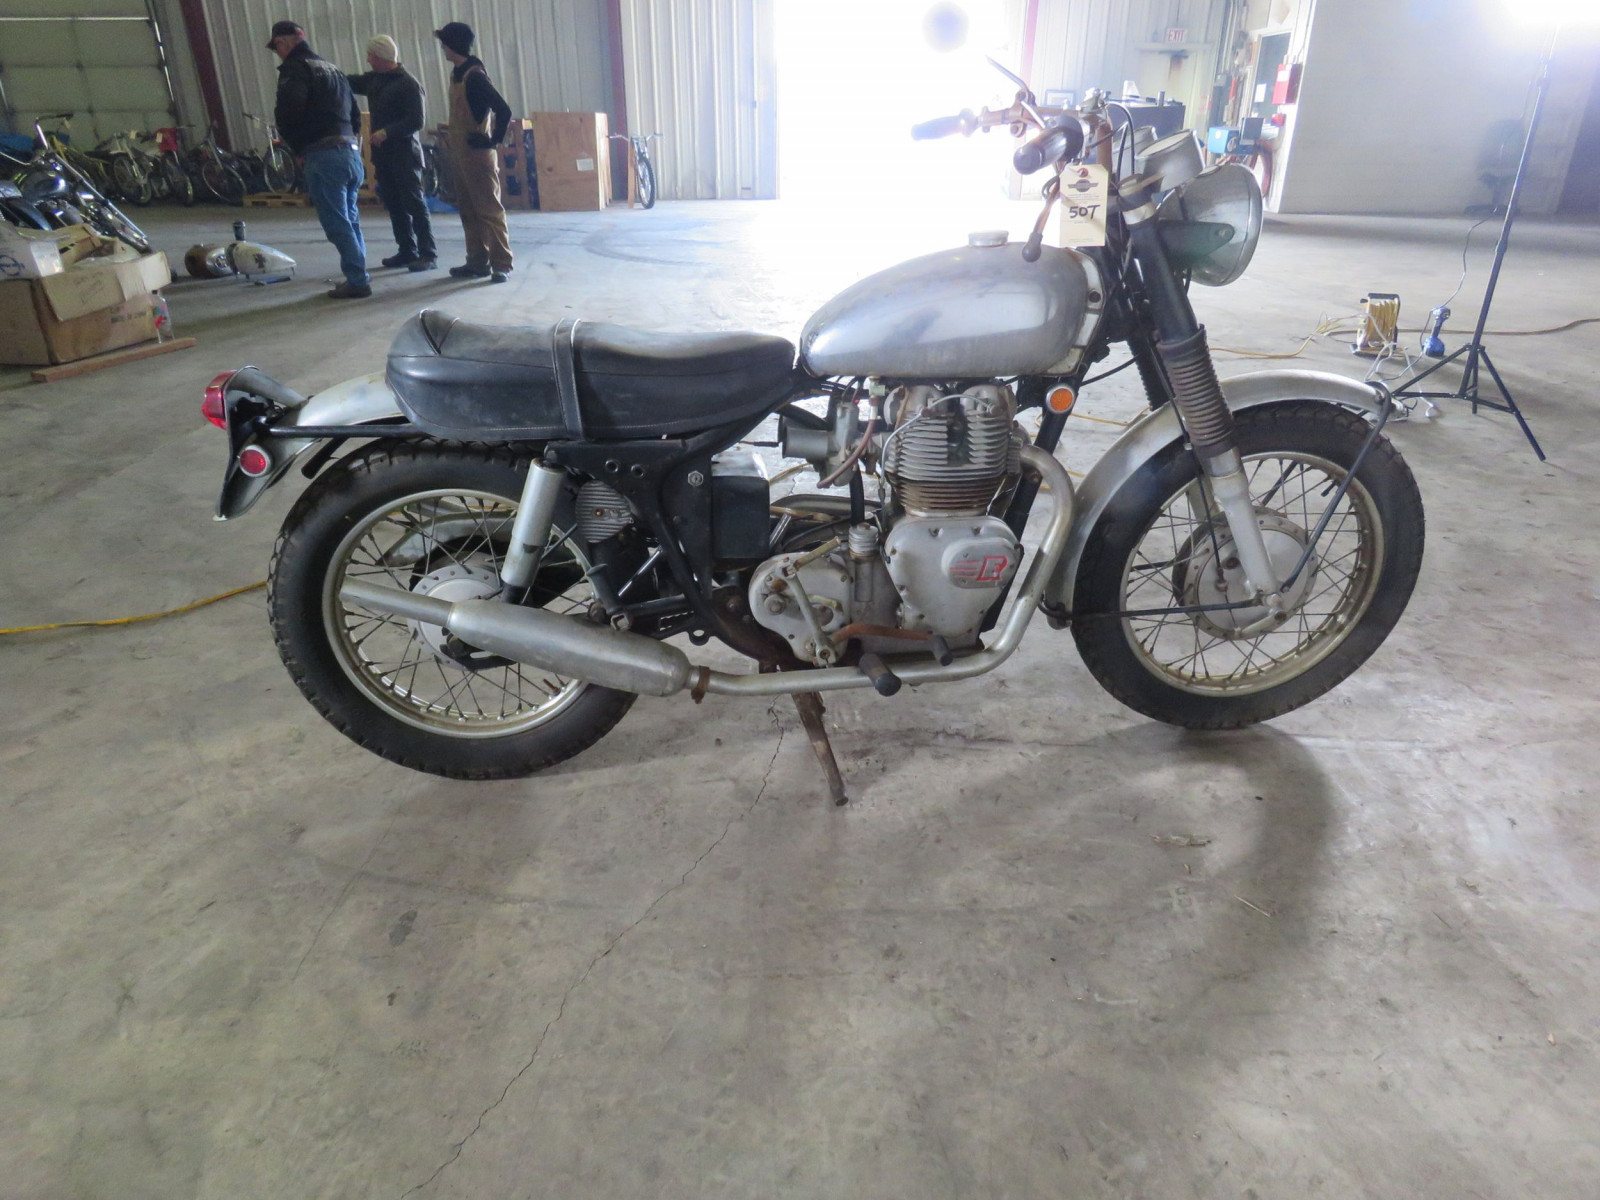 1969 Royal Enfield Series 2 Interceptor Motorcycle - Image 6